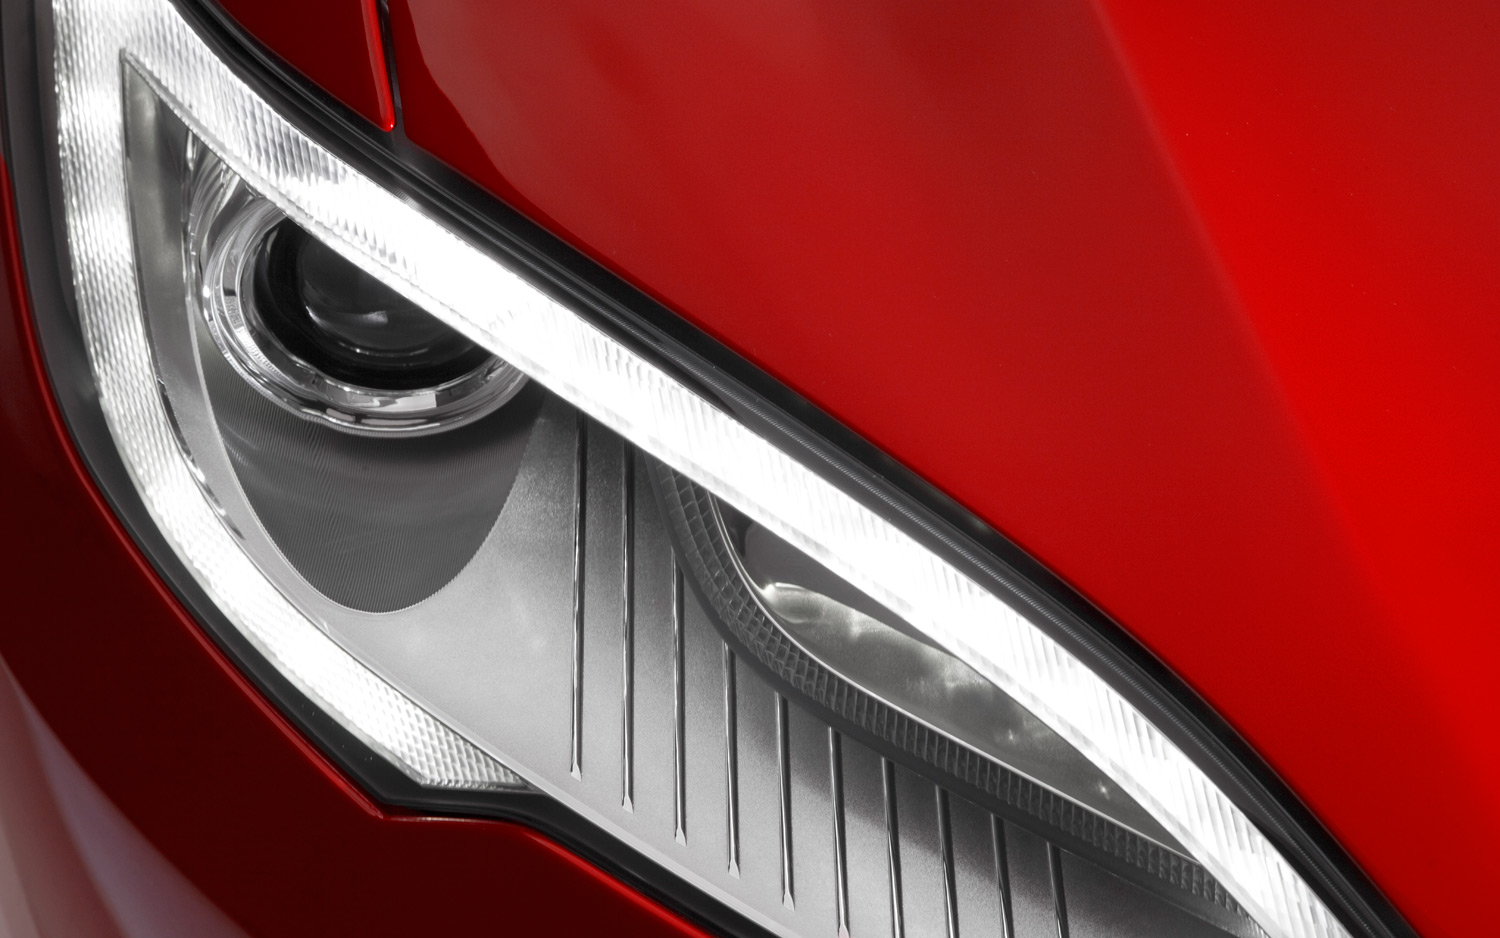 2013-tesla-model-s-headlight.jpg